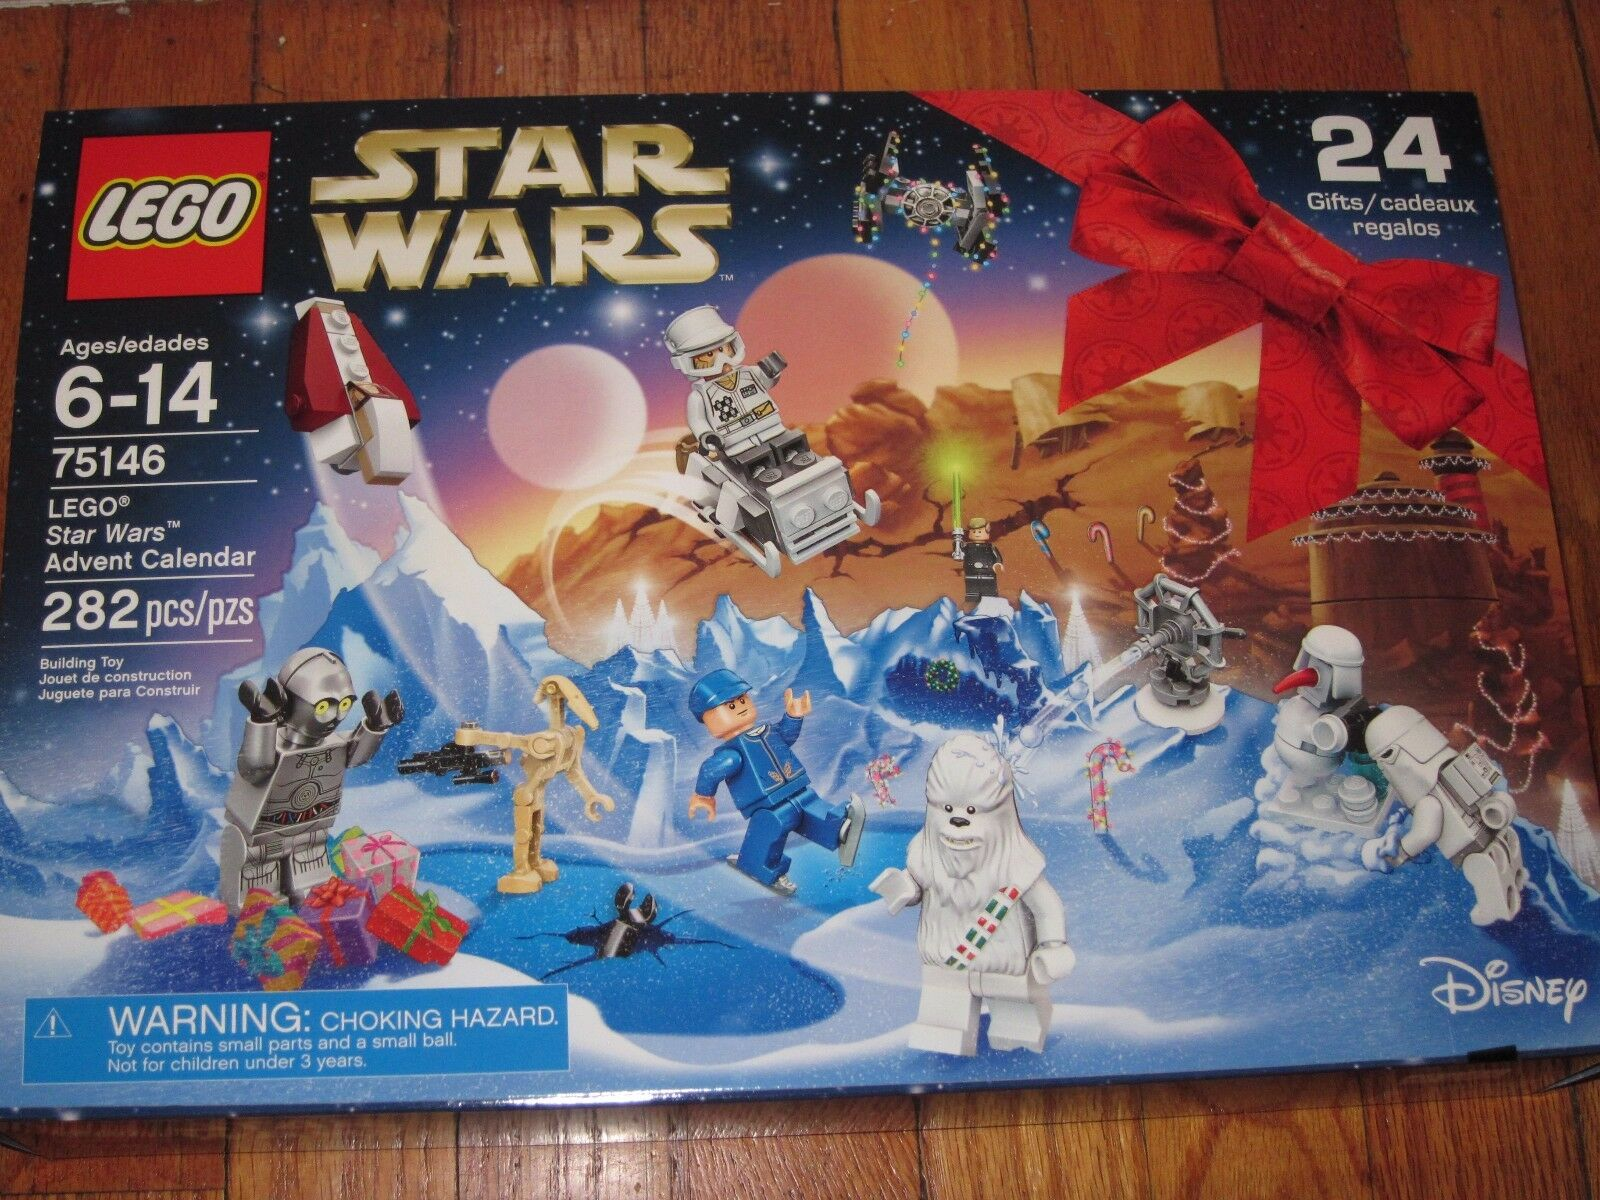 LEGO STAR WARS 75146 ADVENT CALENDAR 282 PIECES 2016 NEW SEALED